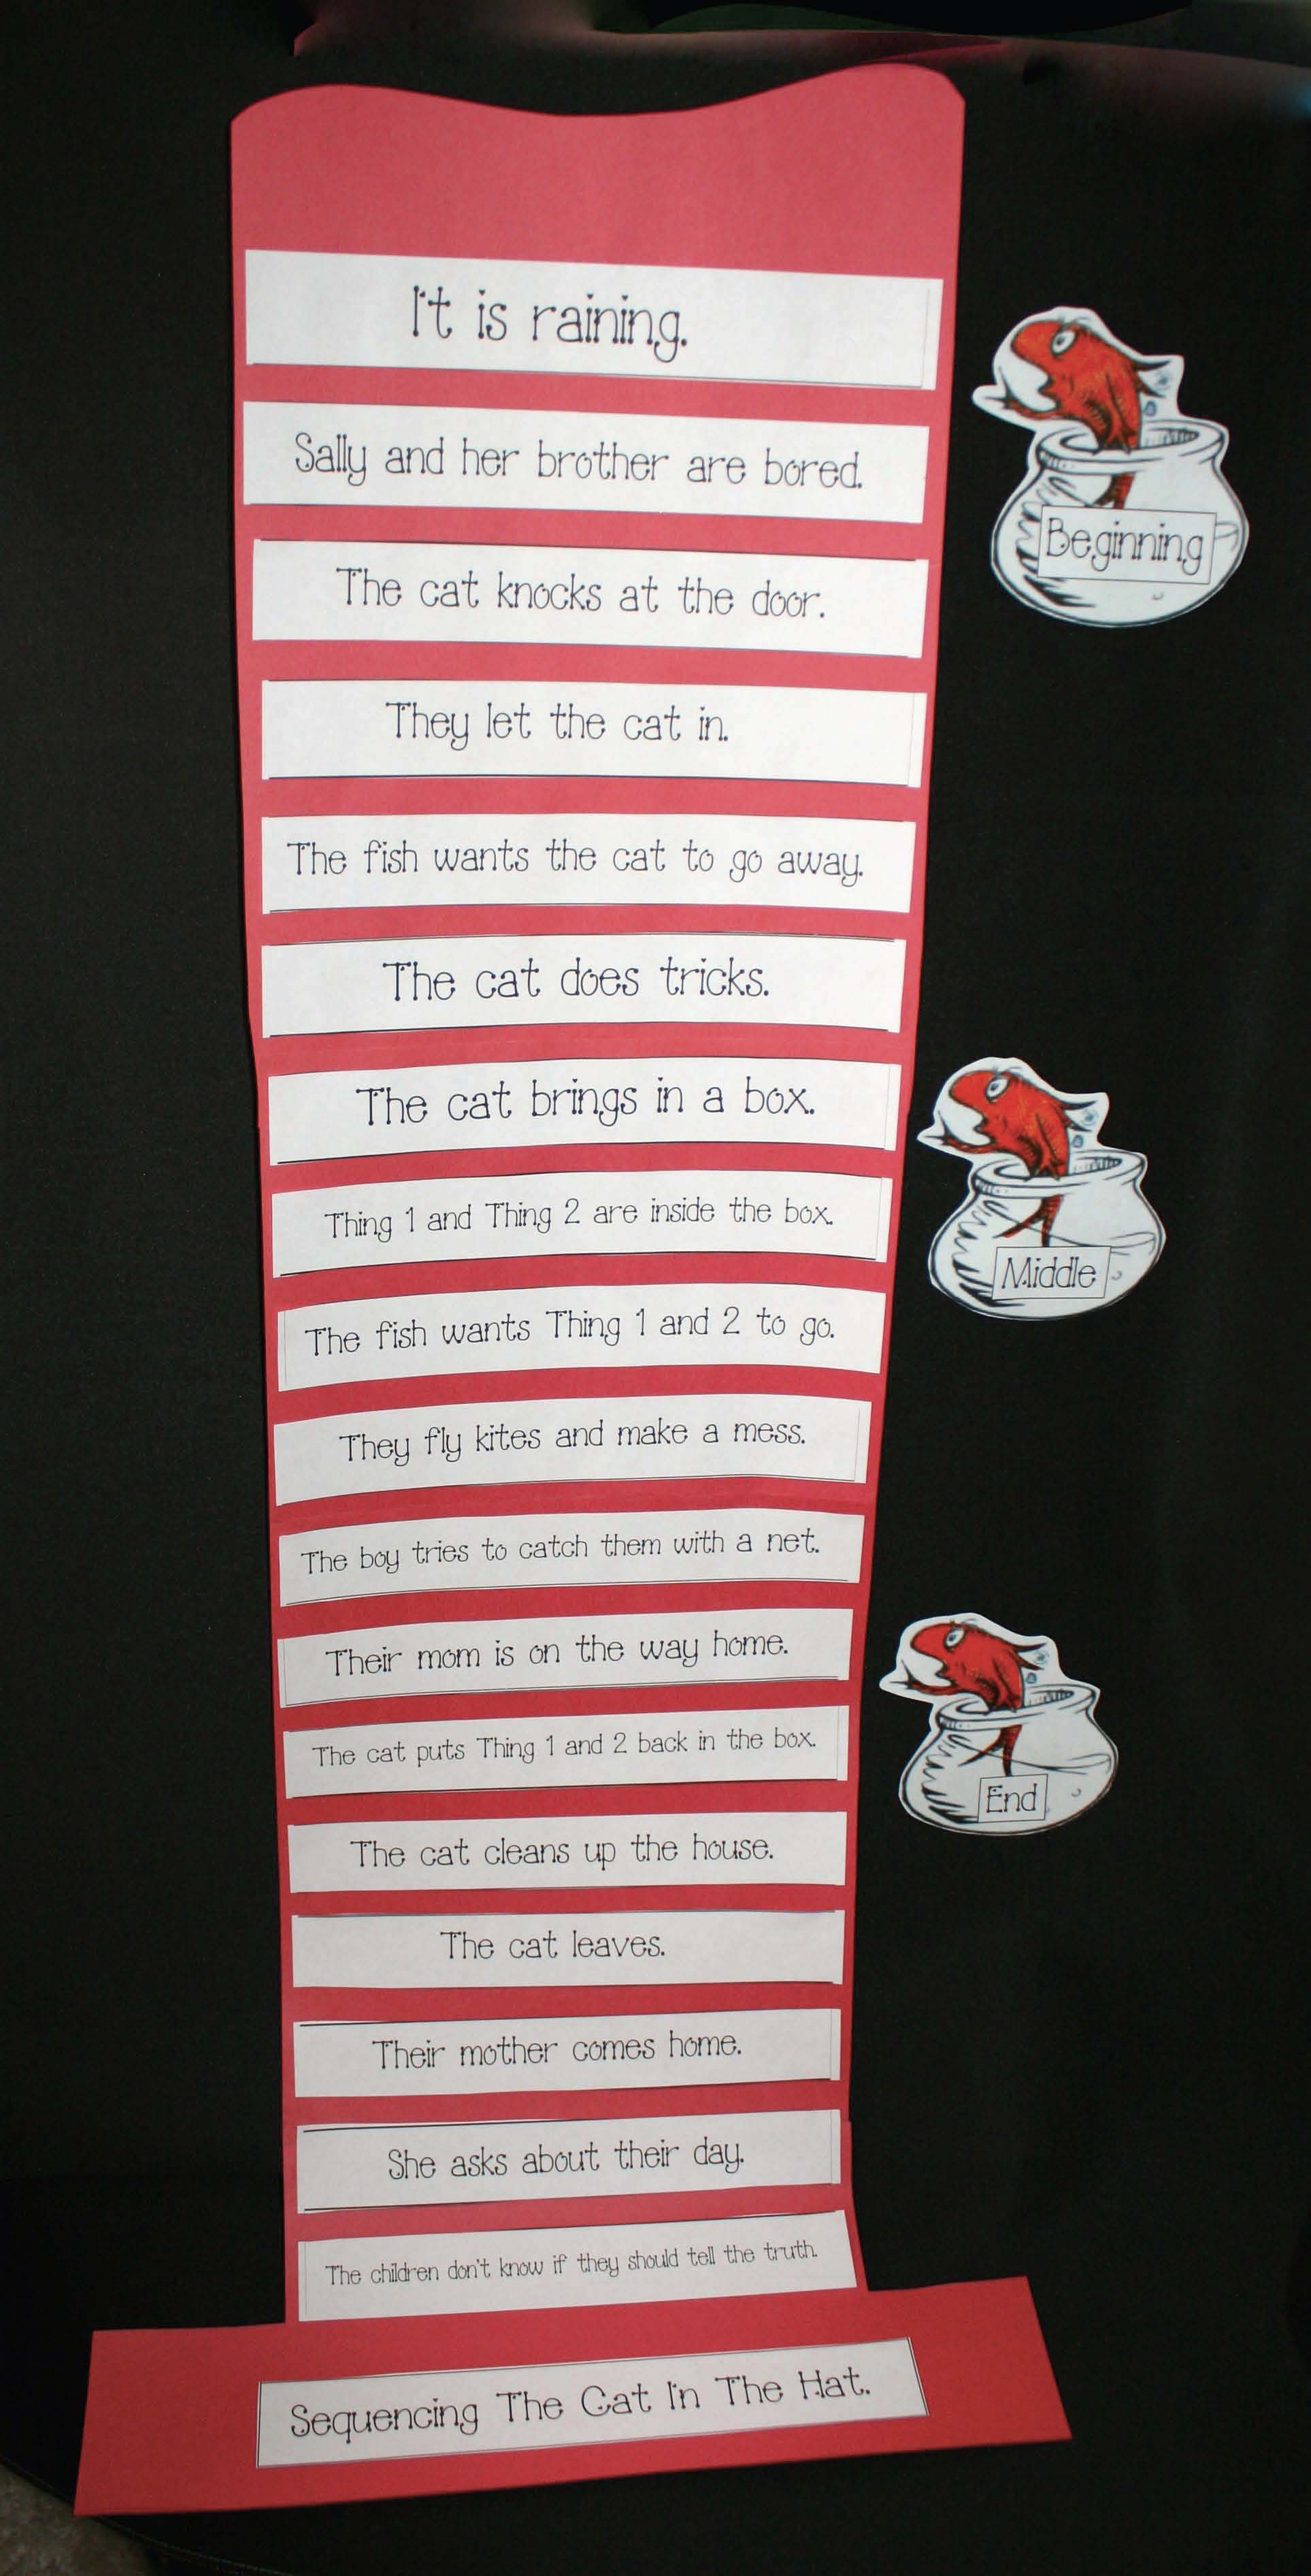 cat in the hat activities, cat in the hat crafts, read across america activities, read across america bulletin boards, seuss activities, seuss crafts, sequencing and retelling the cat and the hat